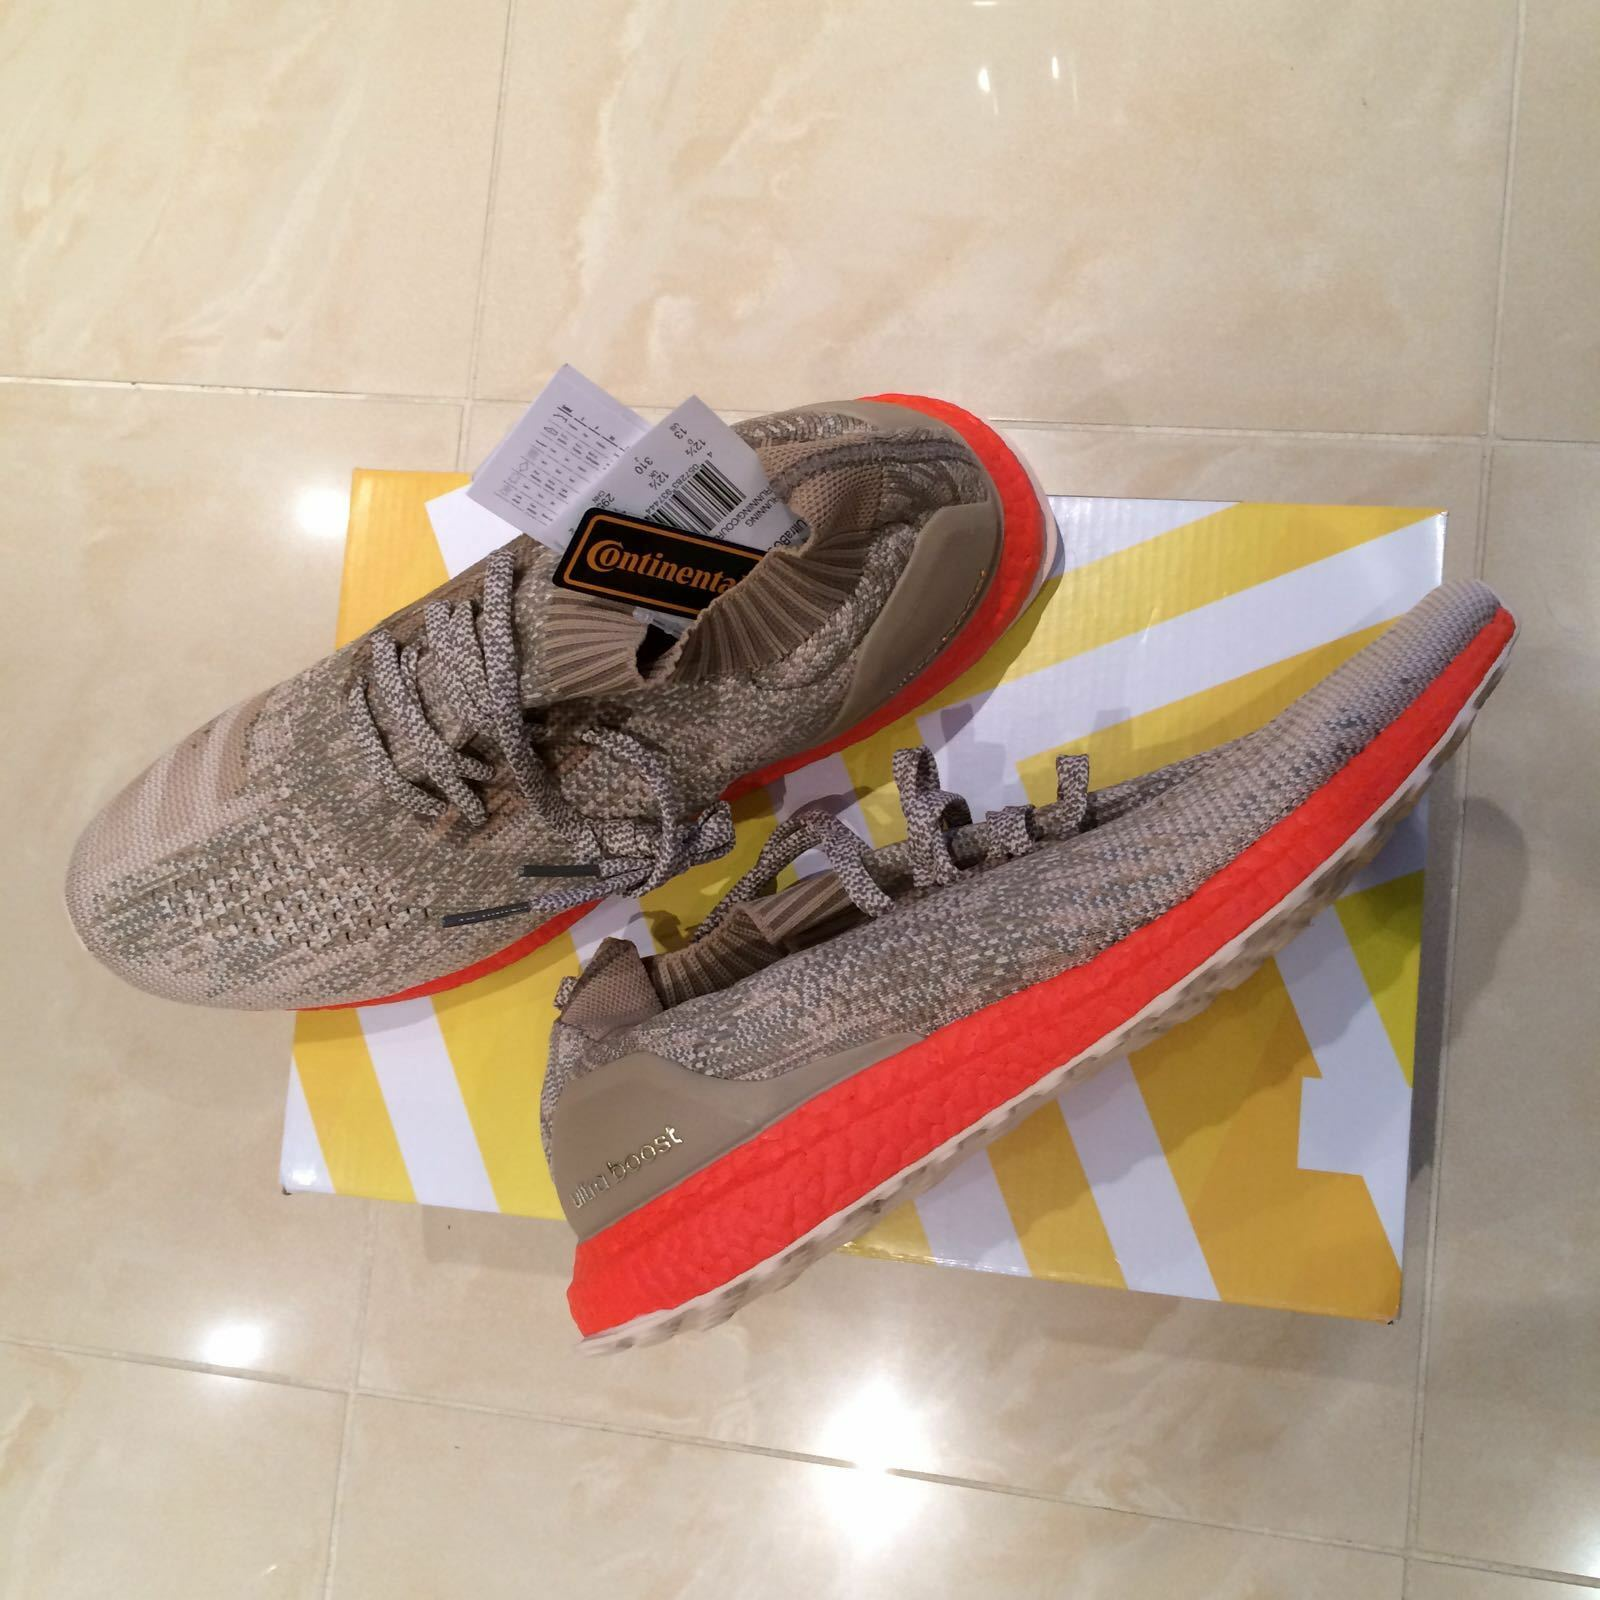 ADIDAS ULTRA ULTRA ULTRA BOOST UNCAGED Tan solaire rouge TRACE Cargo Toutes Tailles 7 8 9 10 11 12 13 bc0d1d